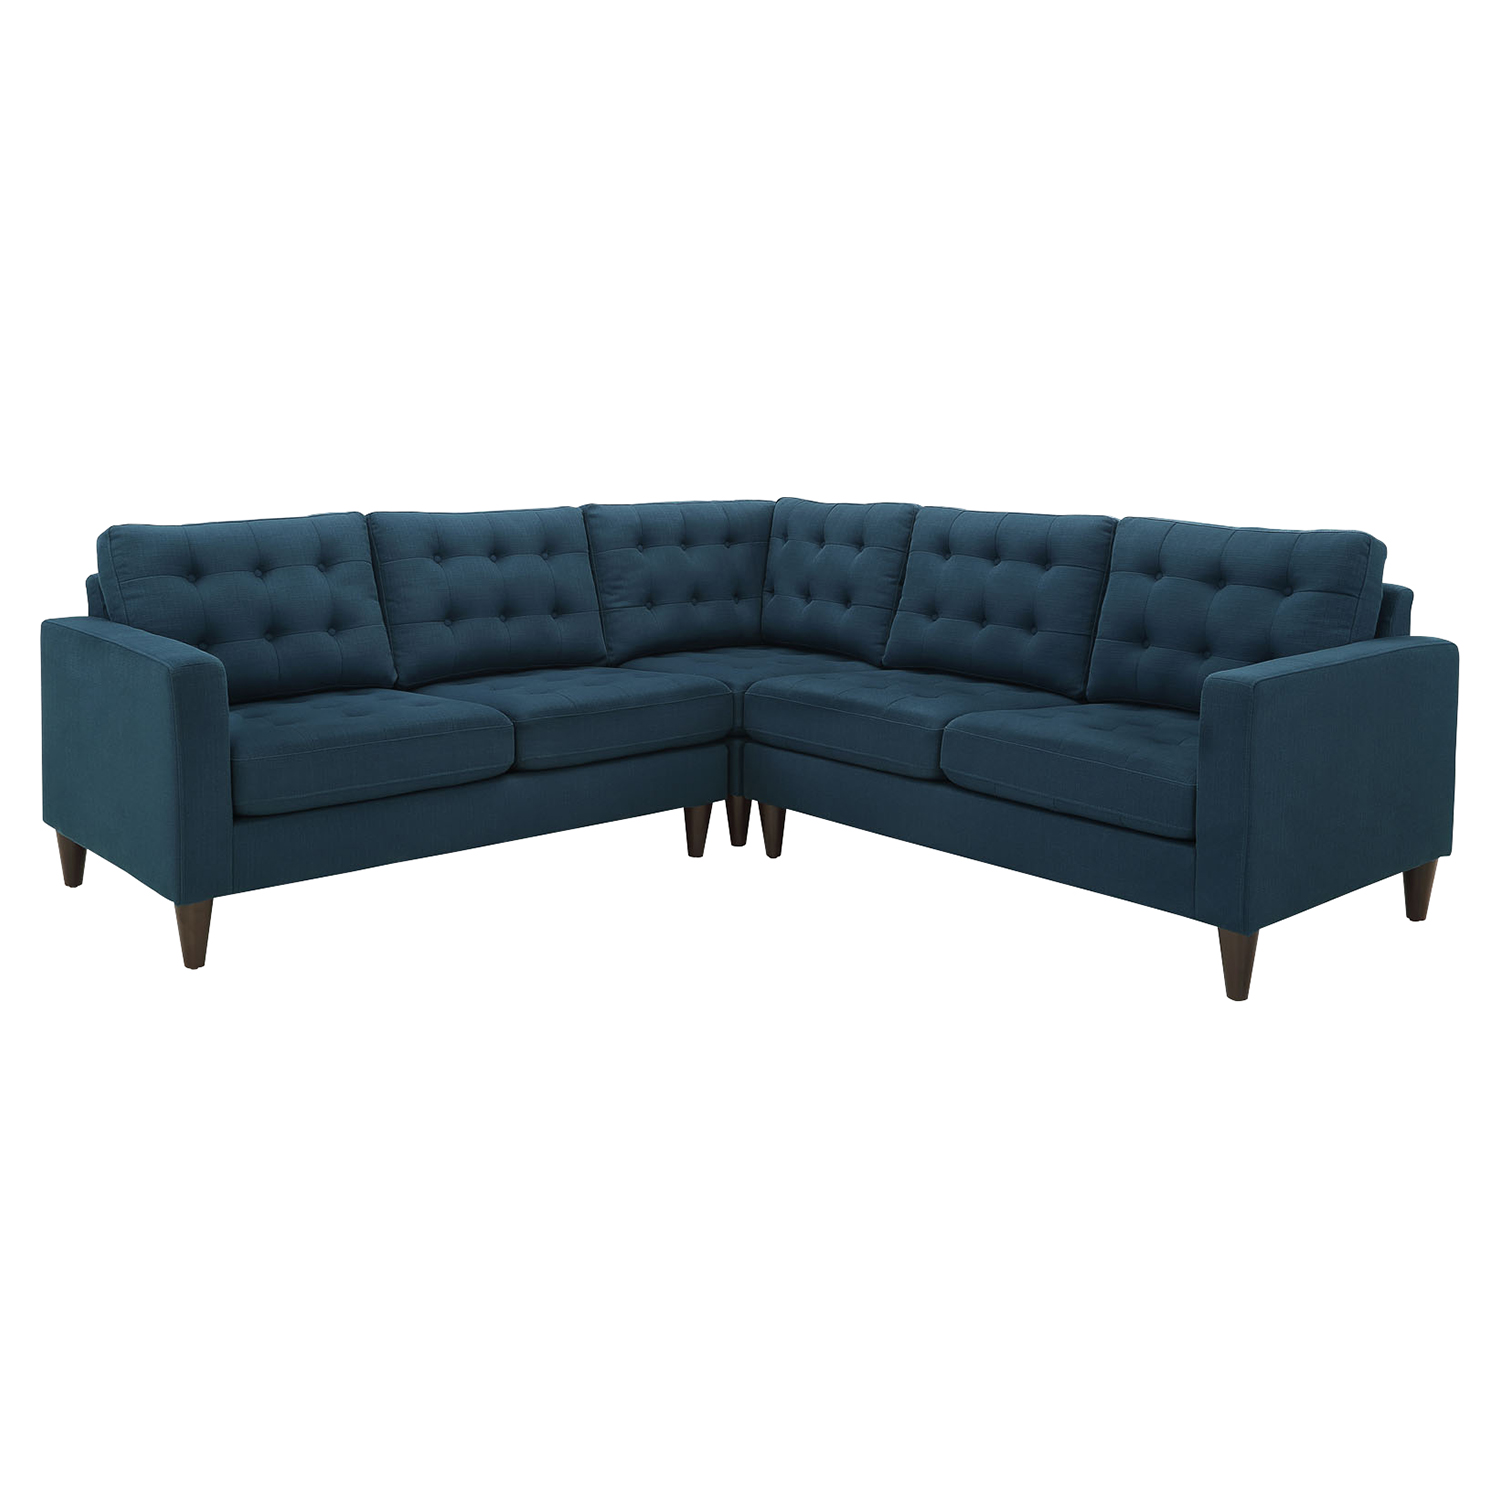 Empress 3 Pieces Fabric Sectional Sofa Set - Tufted - EEI-1417